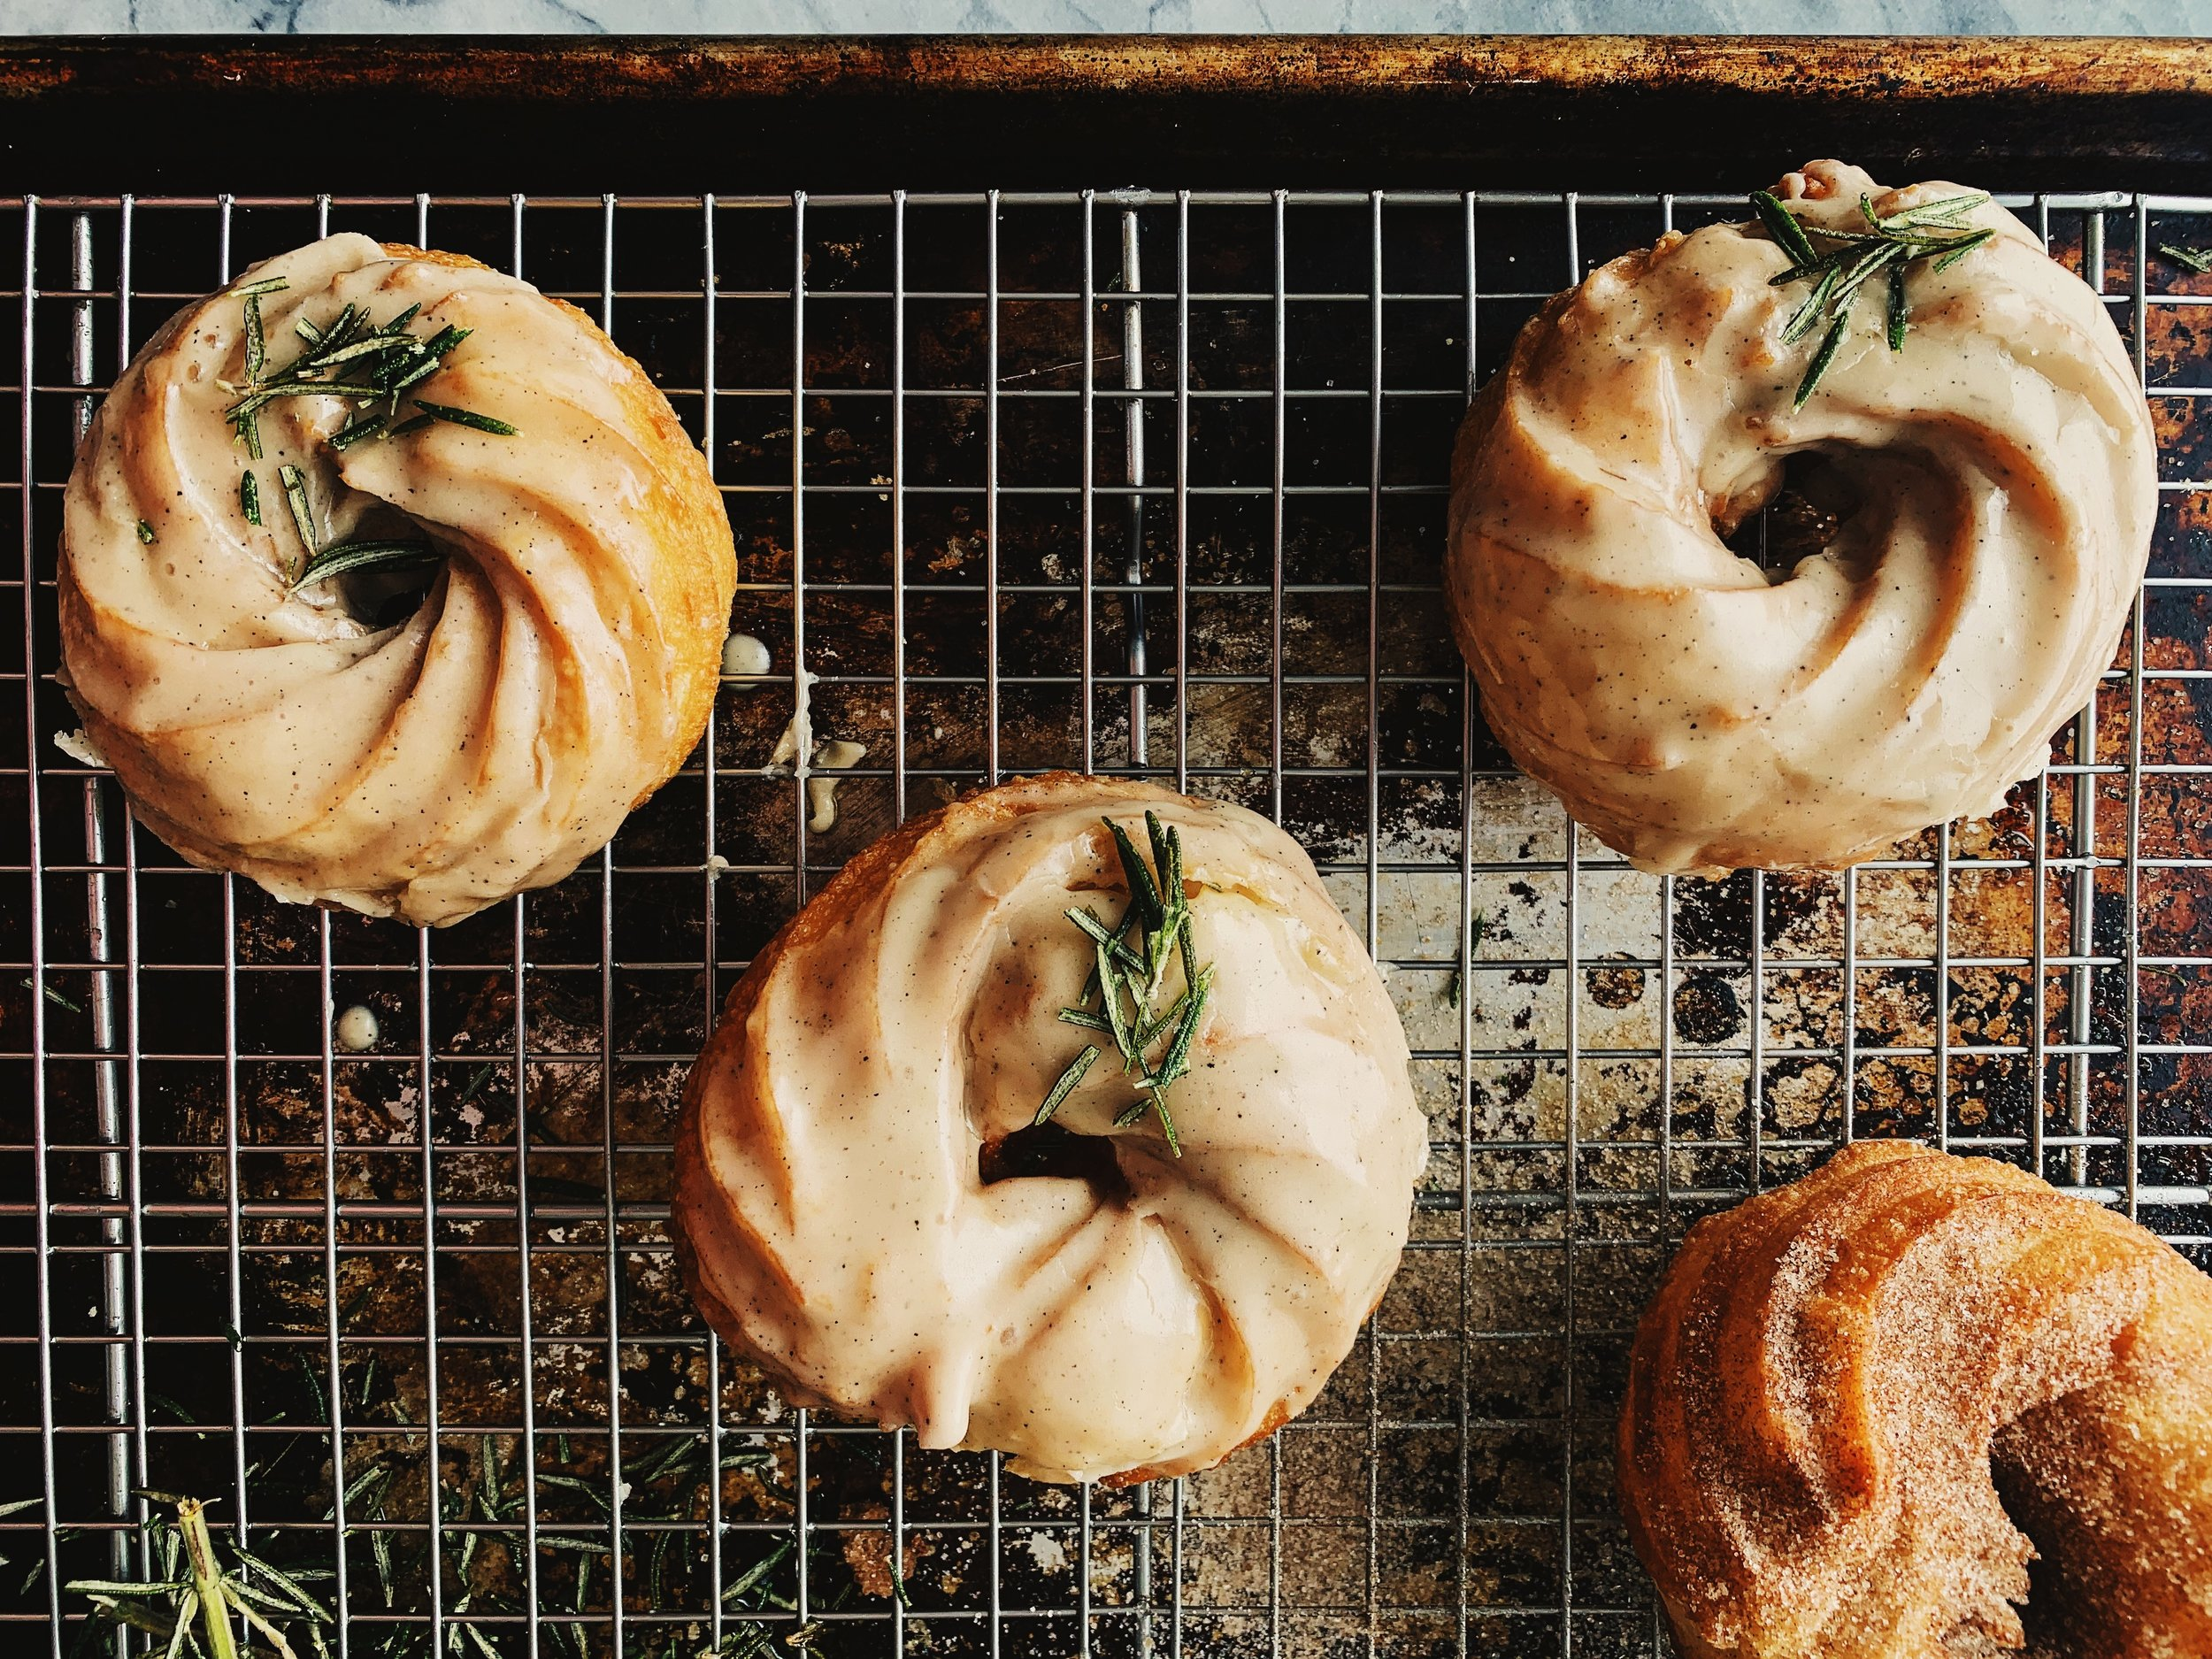 I dipped mine in a brown butter and rosemary glaze!